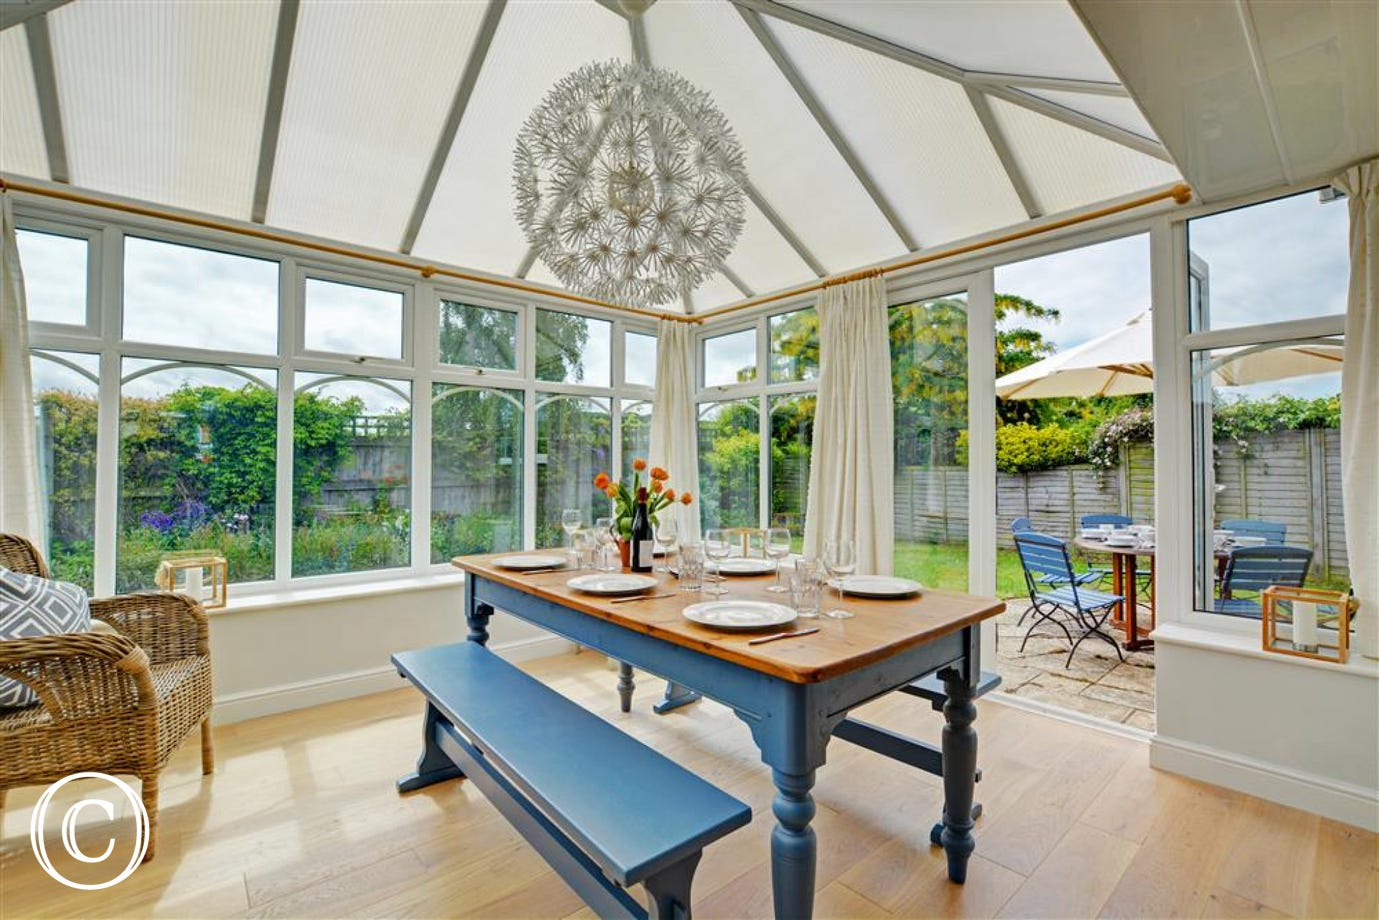 Dining table within the conservatory